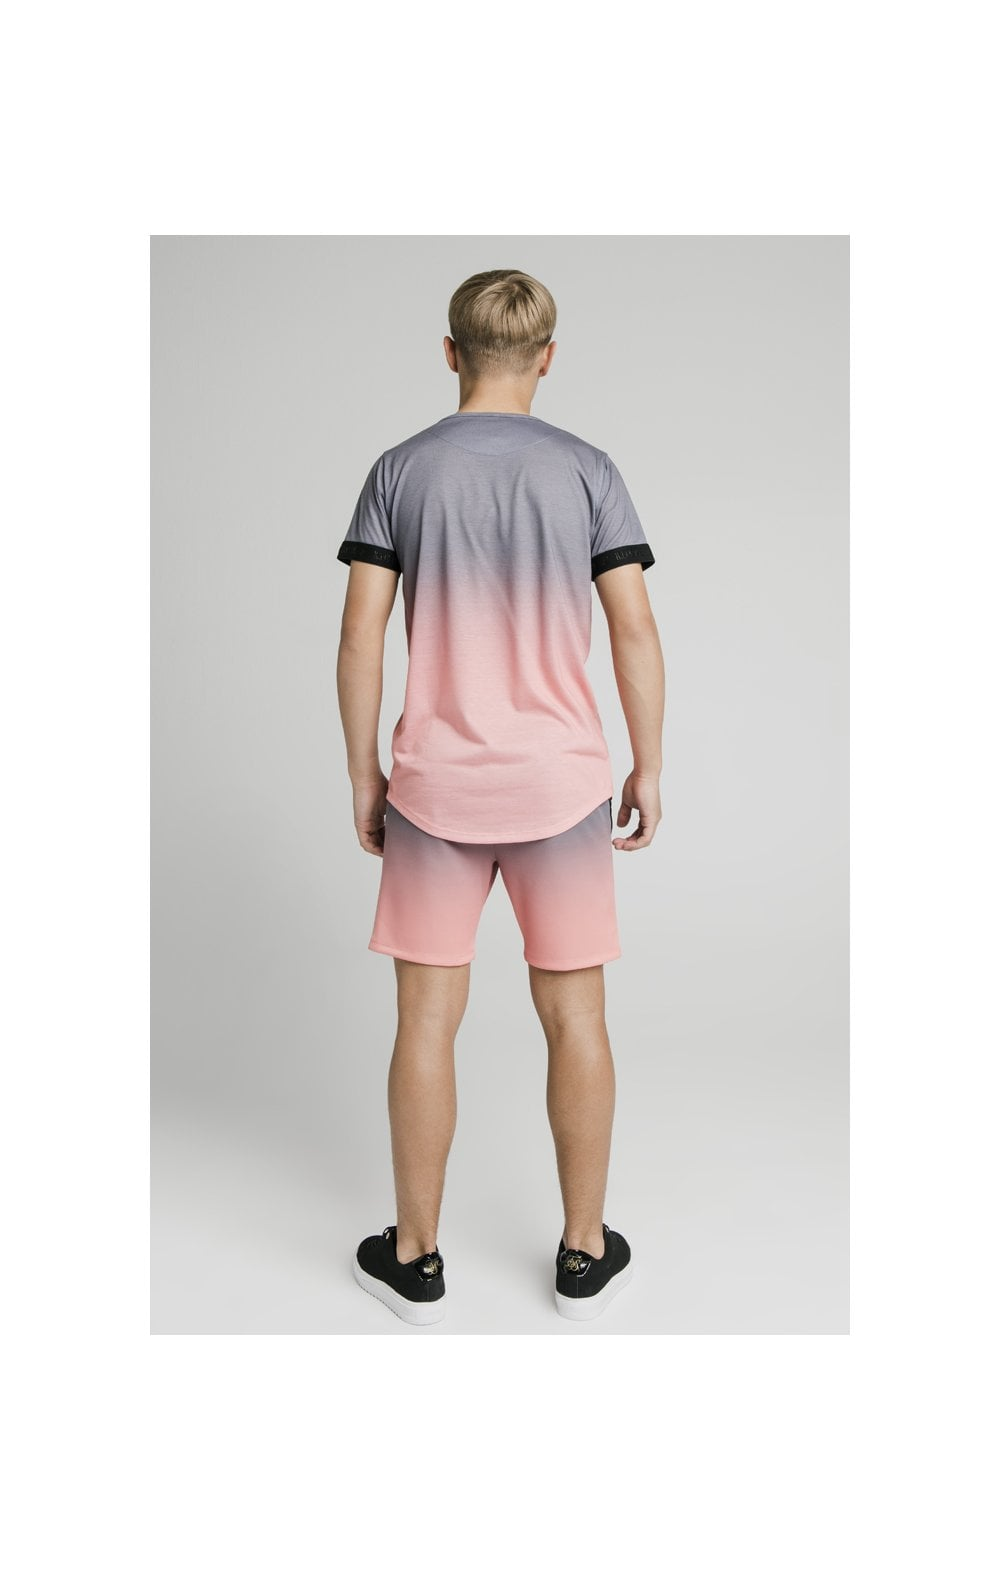 Load image into Gallery viewer, Illusive London Poly Fade Shorts - Grey & Peach (7)